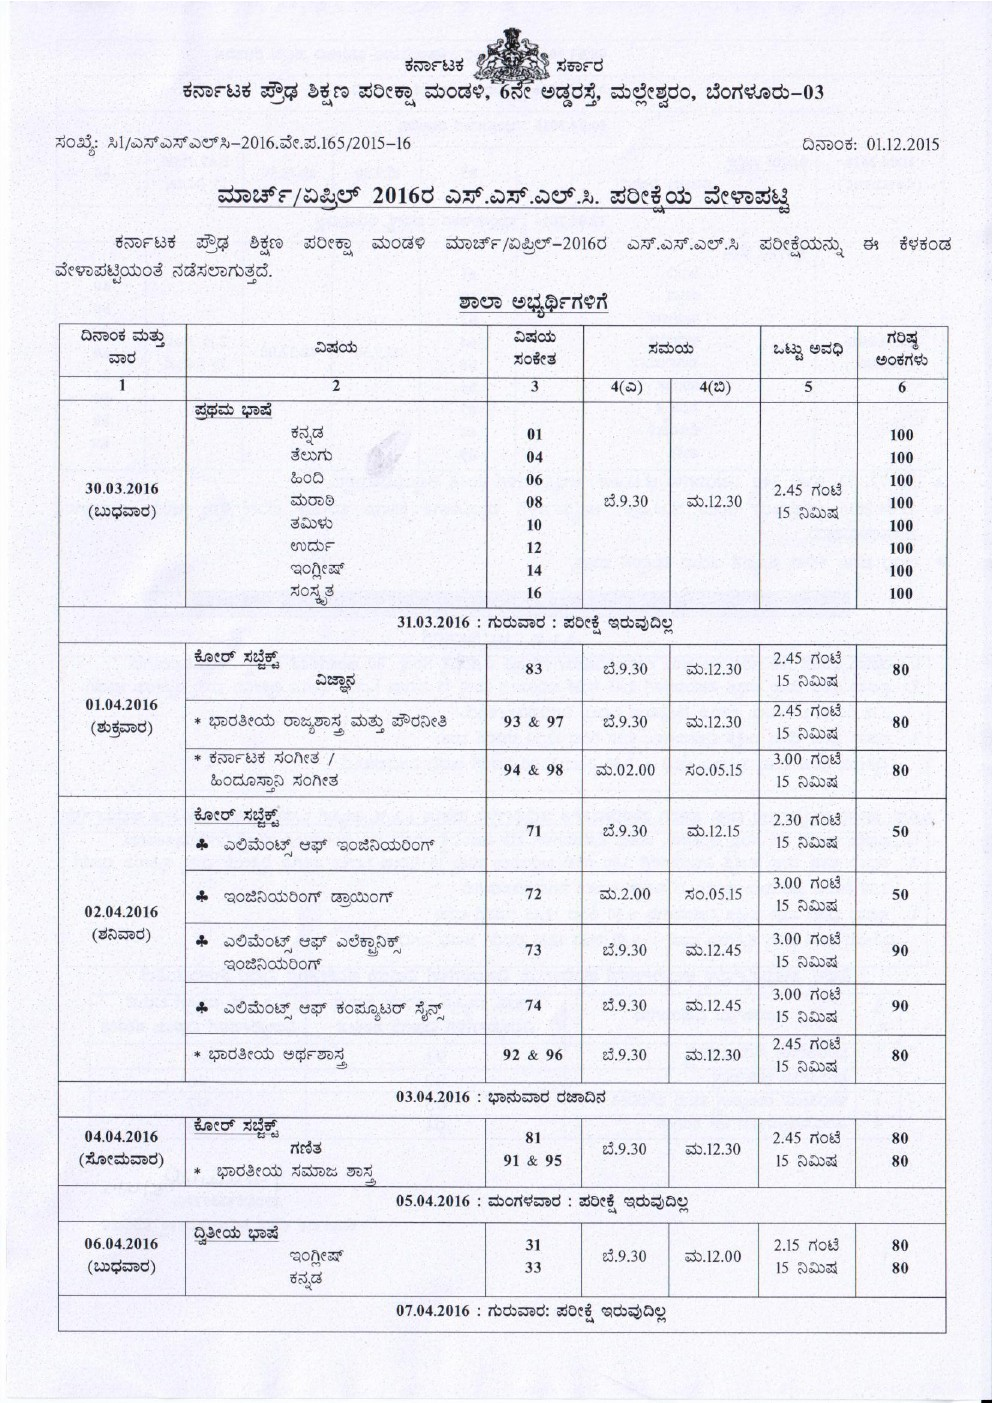 Karnataka board secondary exam time table 2016 akresults karnataka board secondary exam time table 2016 malvernweather Gallery